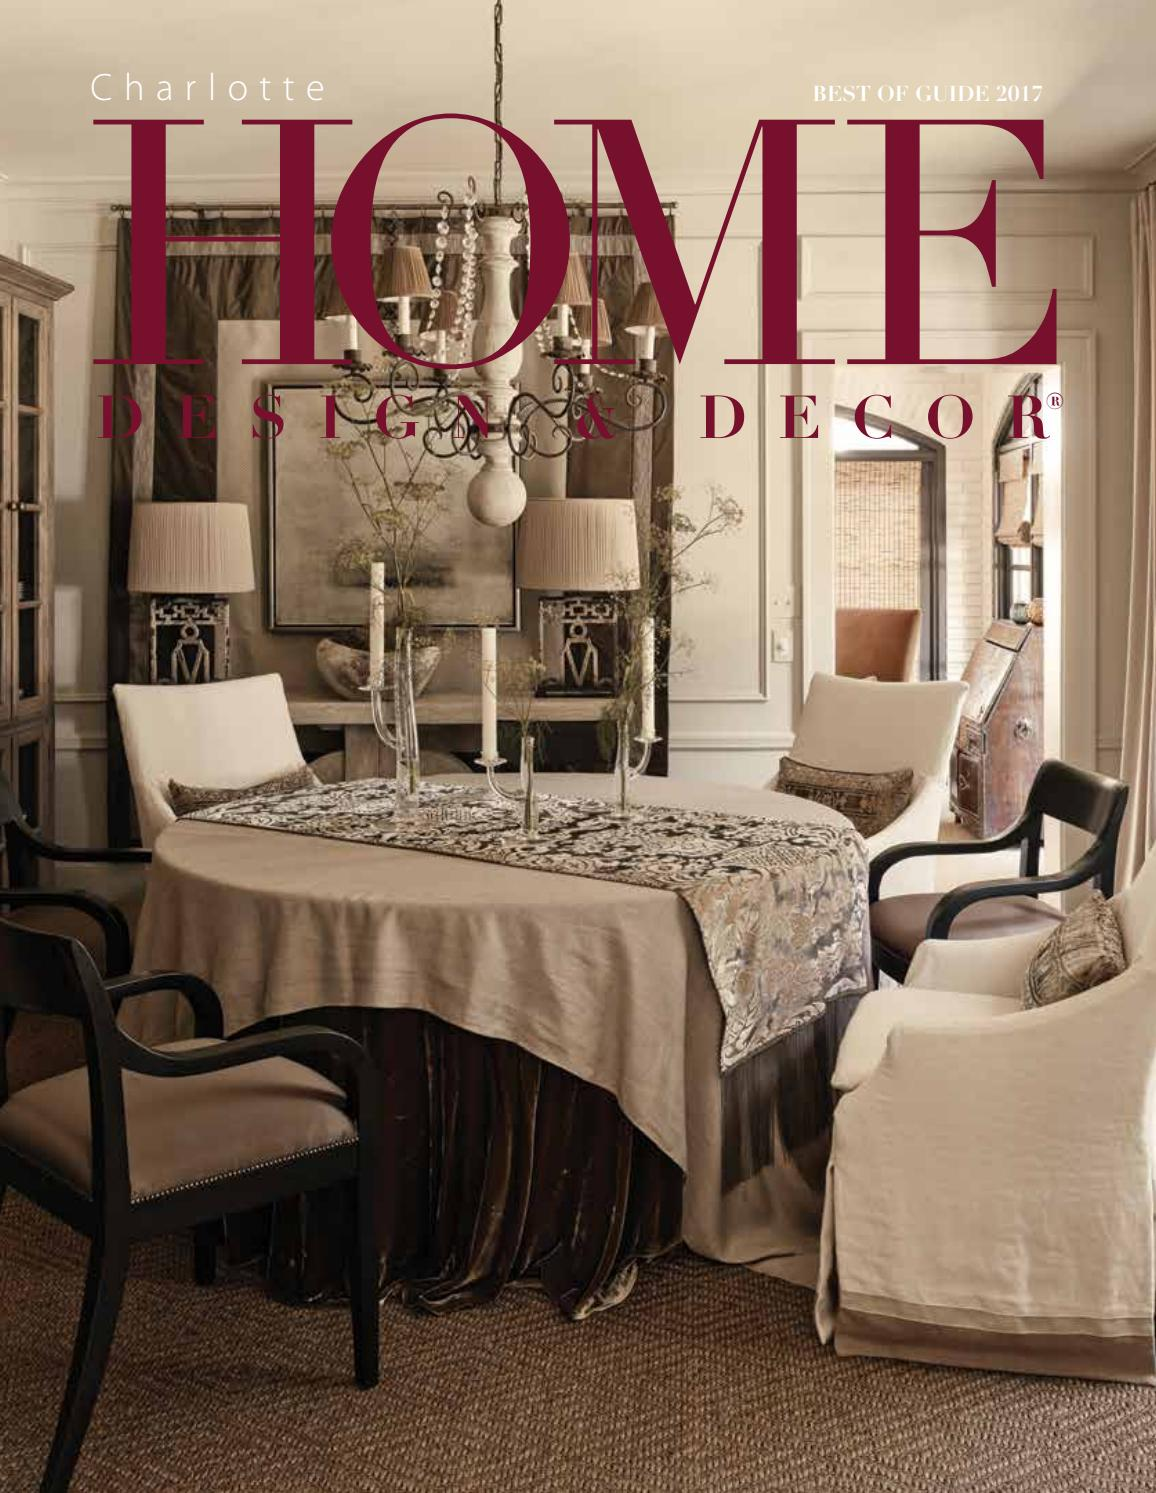 Charlotte best of guide 2017 by home design decor magazine issuu - Top home decor magazines ...